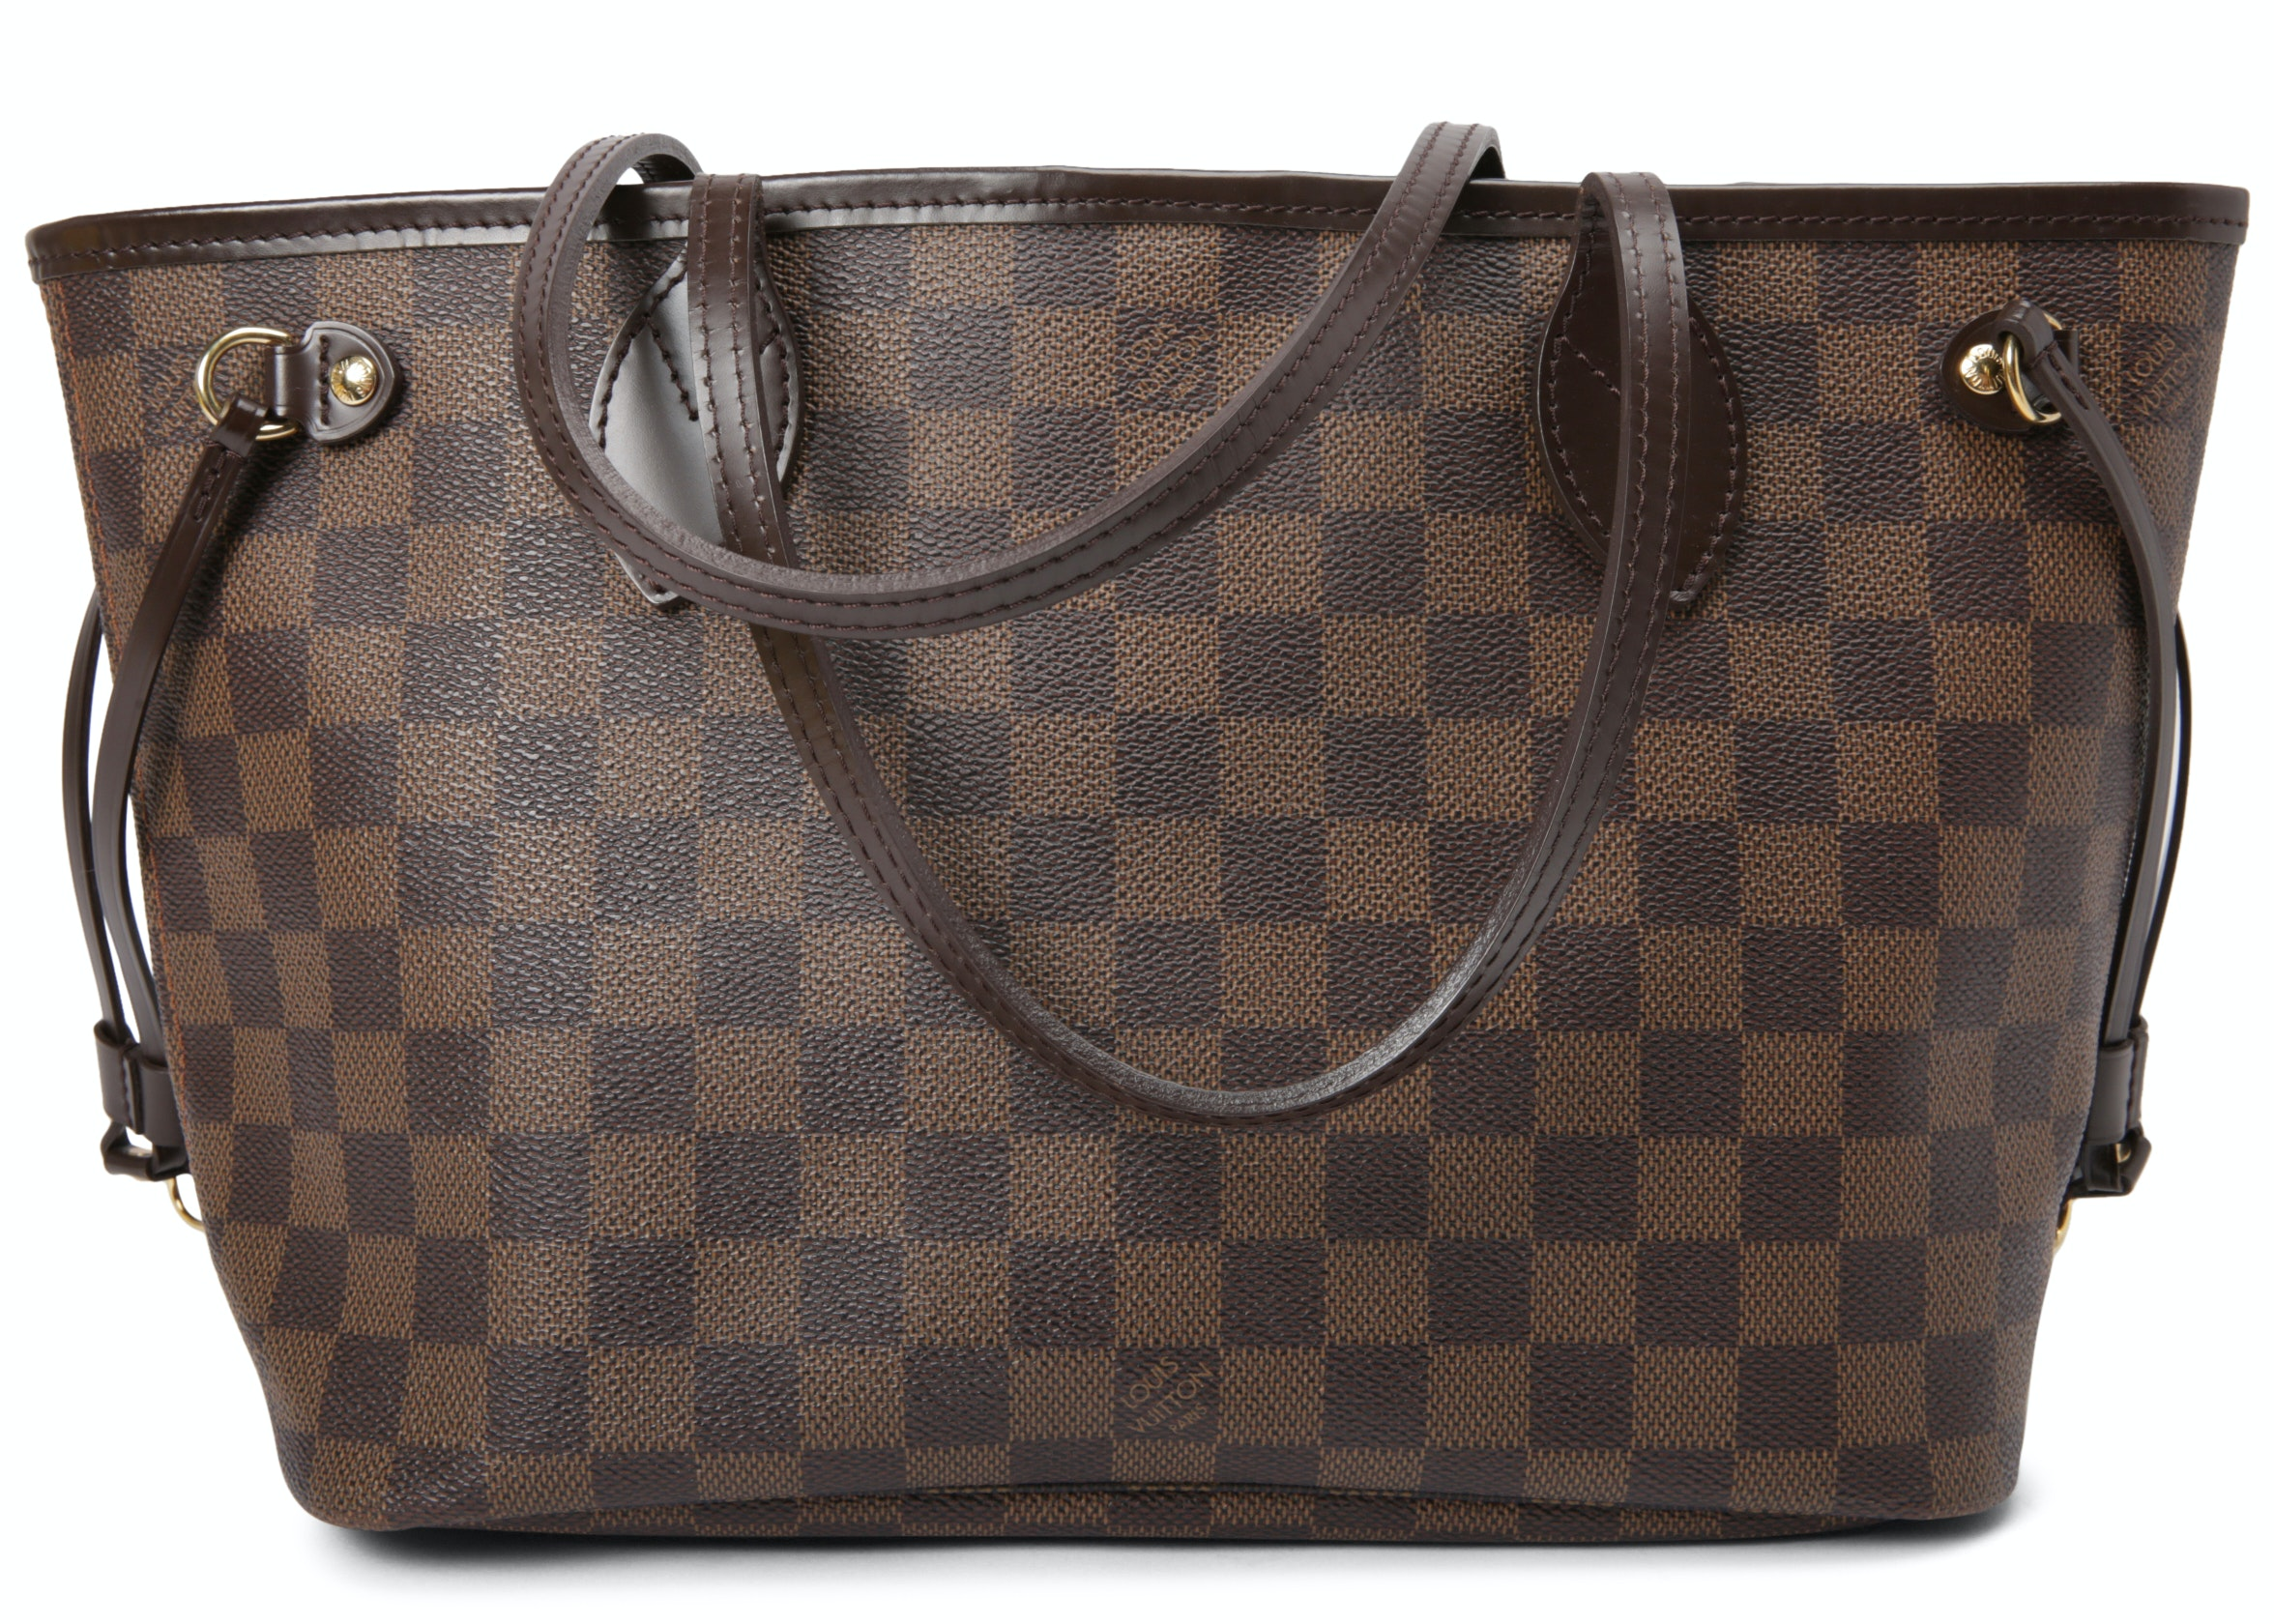 Louis Vuitton Neverfull Damier Ebene (Without Pouch) Pm Cerise Lining by Stock X